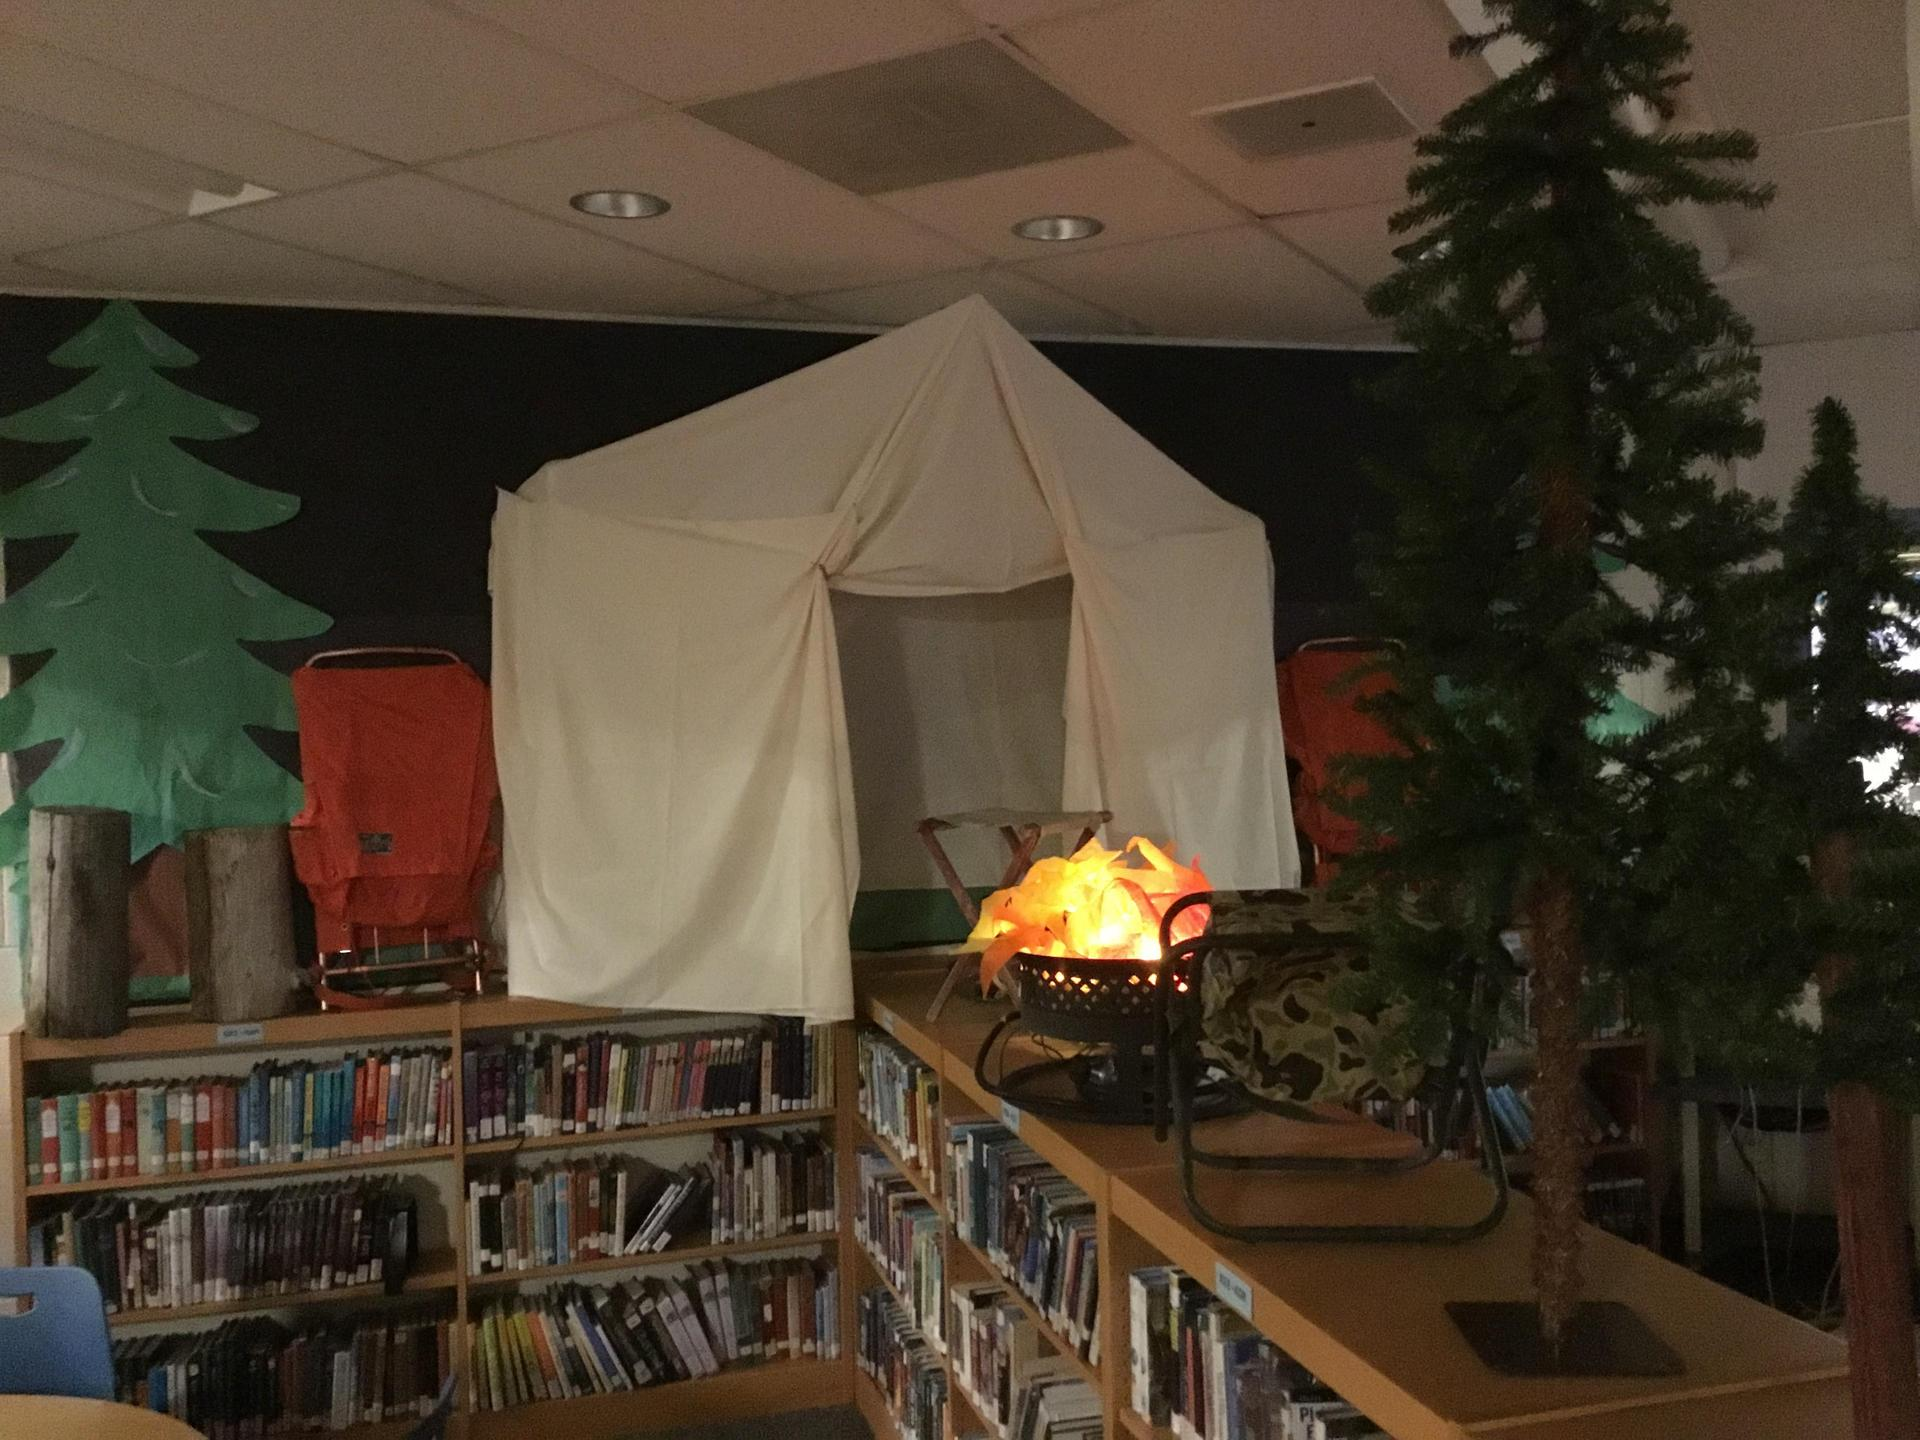 campfire and tent display